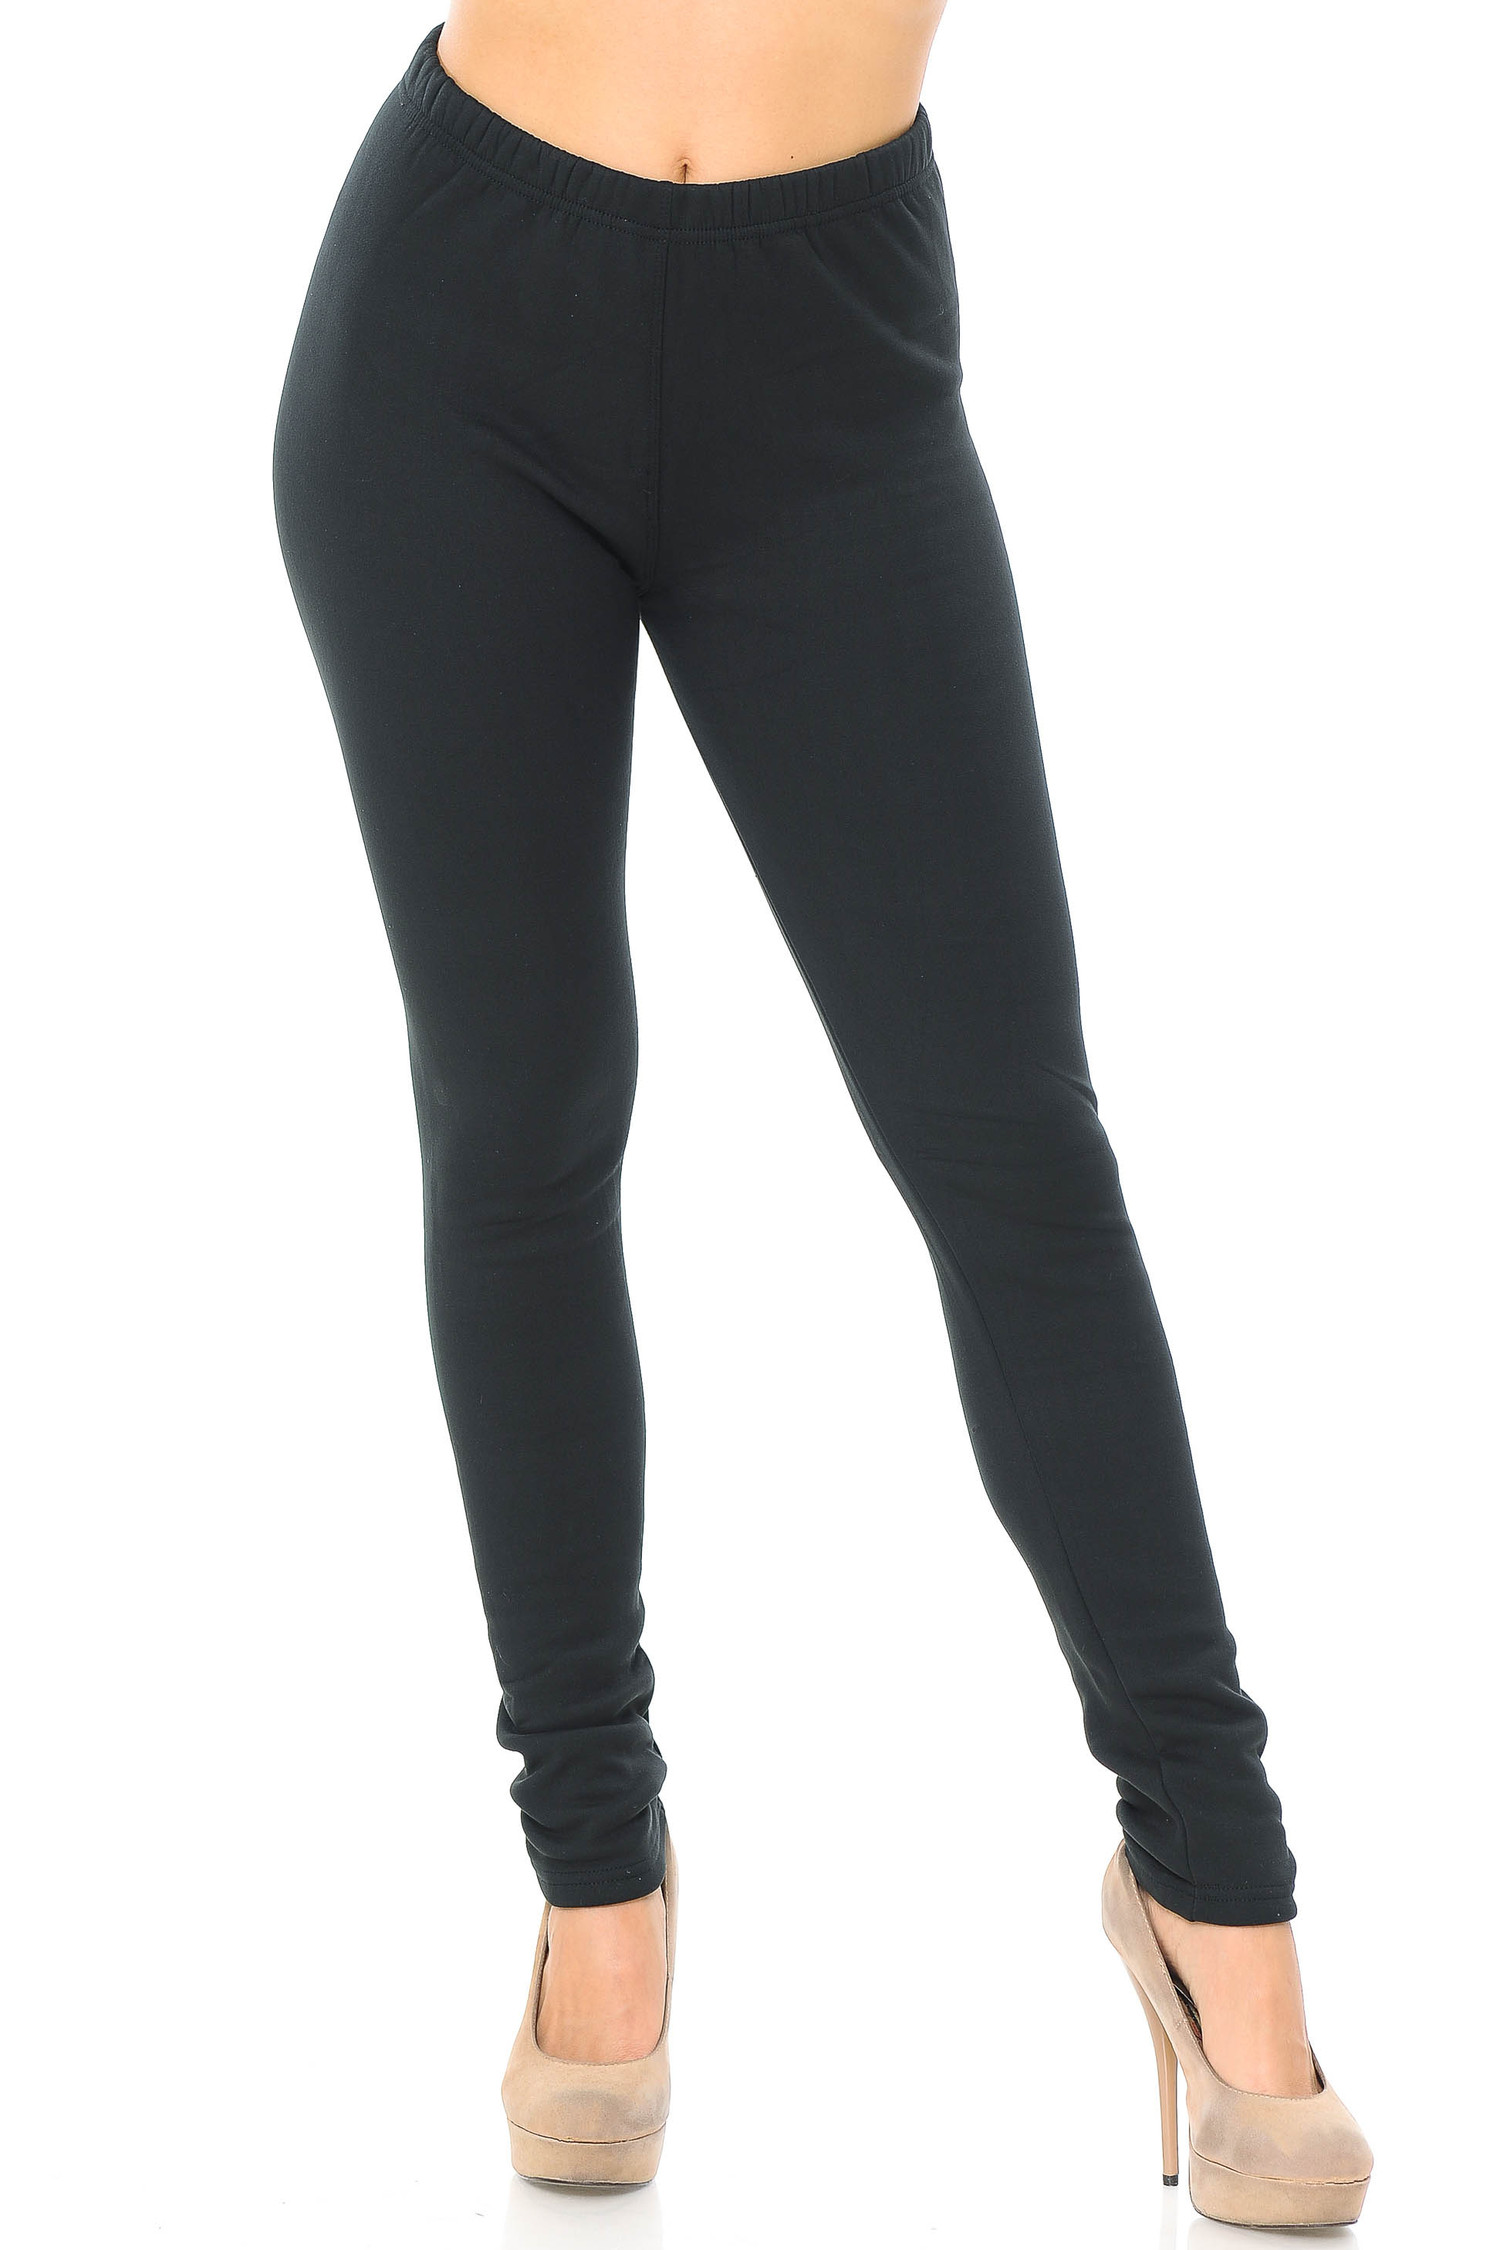 Front view of Luxury Creamy Soft Fleece Lined Extra Plus Size Leggings - 3X-5X - USA Fashion™